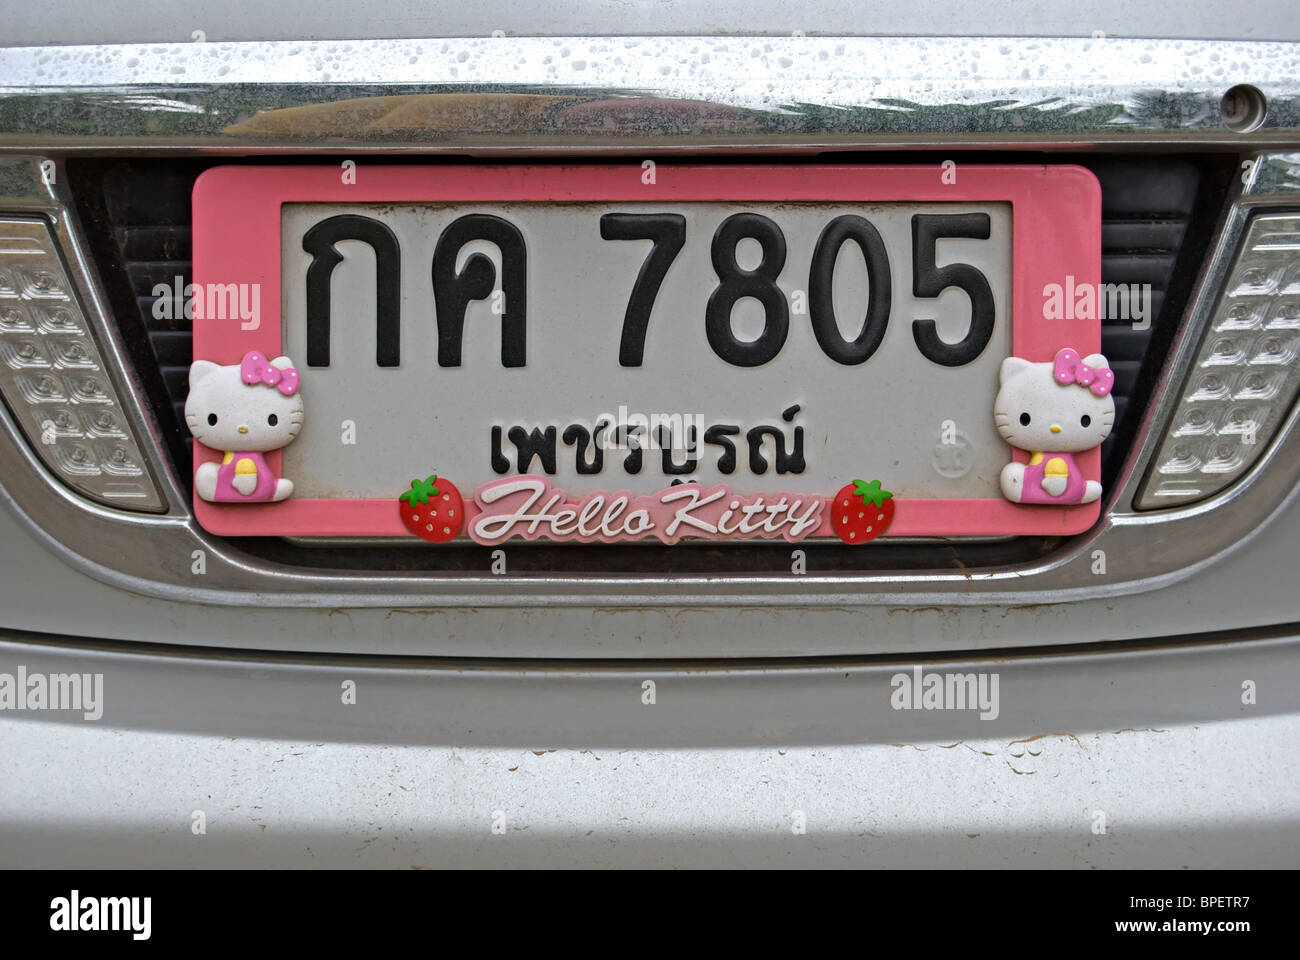 Apologise, but, asian car number plates